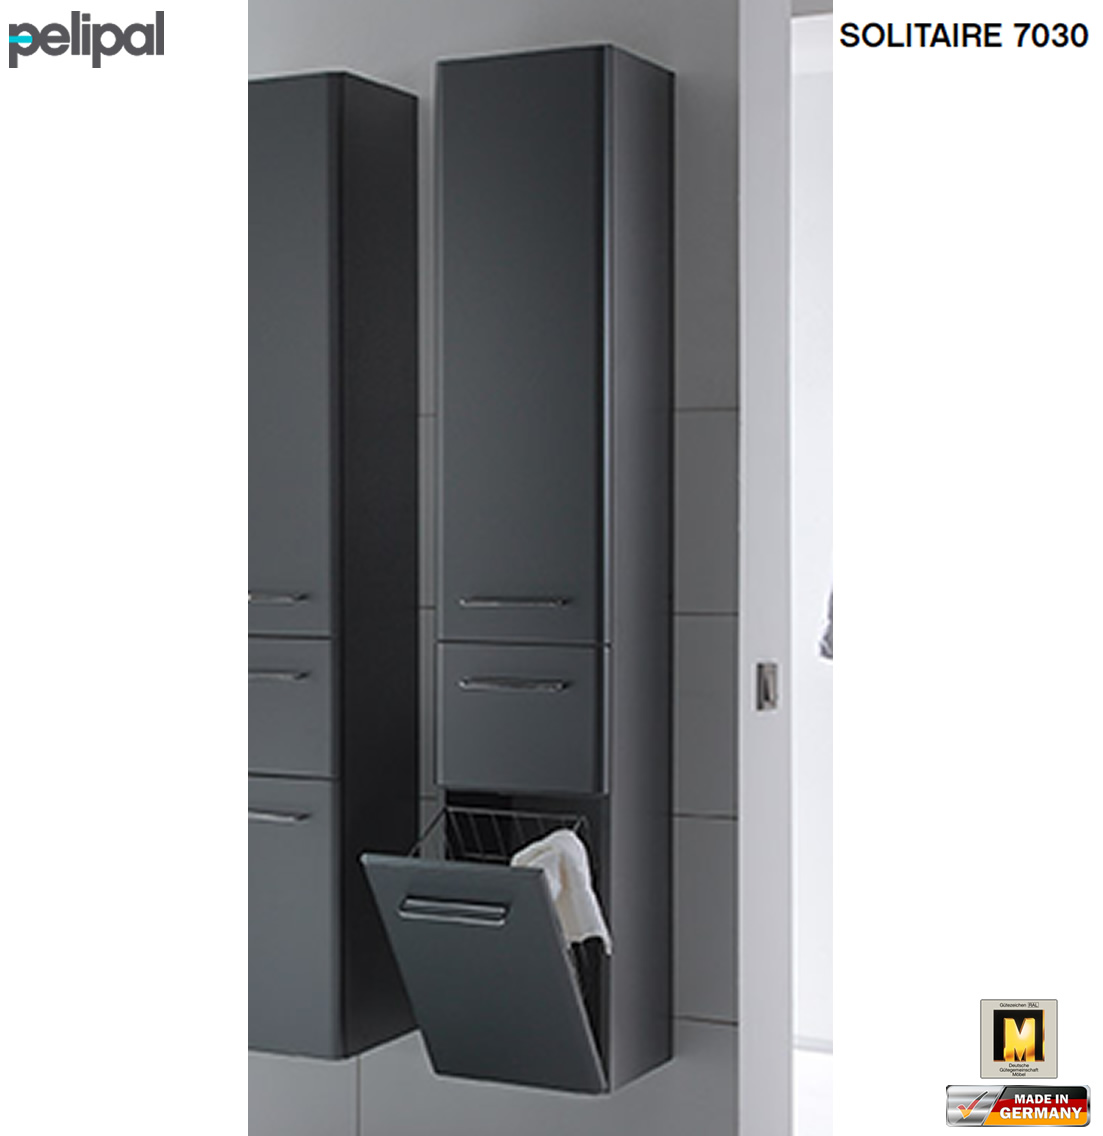 pelipal solitaire 7030 hochschrank 30 cm breite mit w schekippe 1 t r 1 auszug impuls home. Black Bedroom Furniture Sets. Home Design Ideas